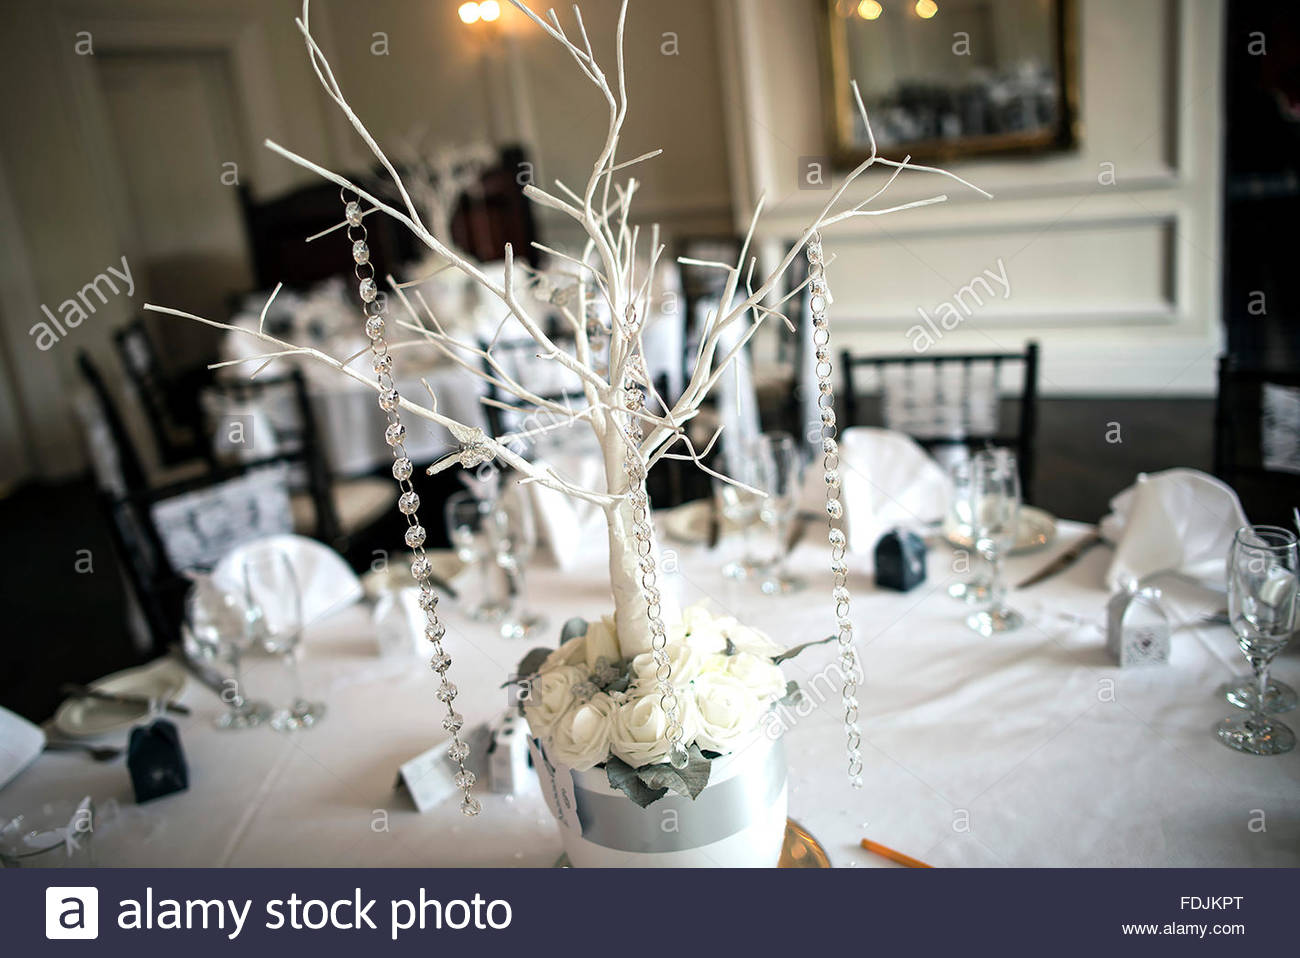 Wedding Table Settings Stock Photos Wedding Table Settings Stock